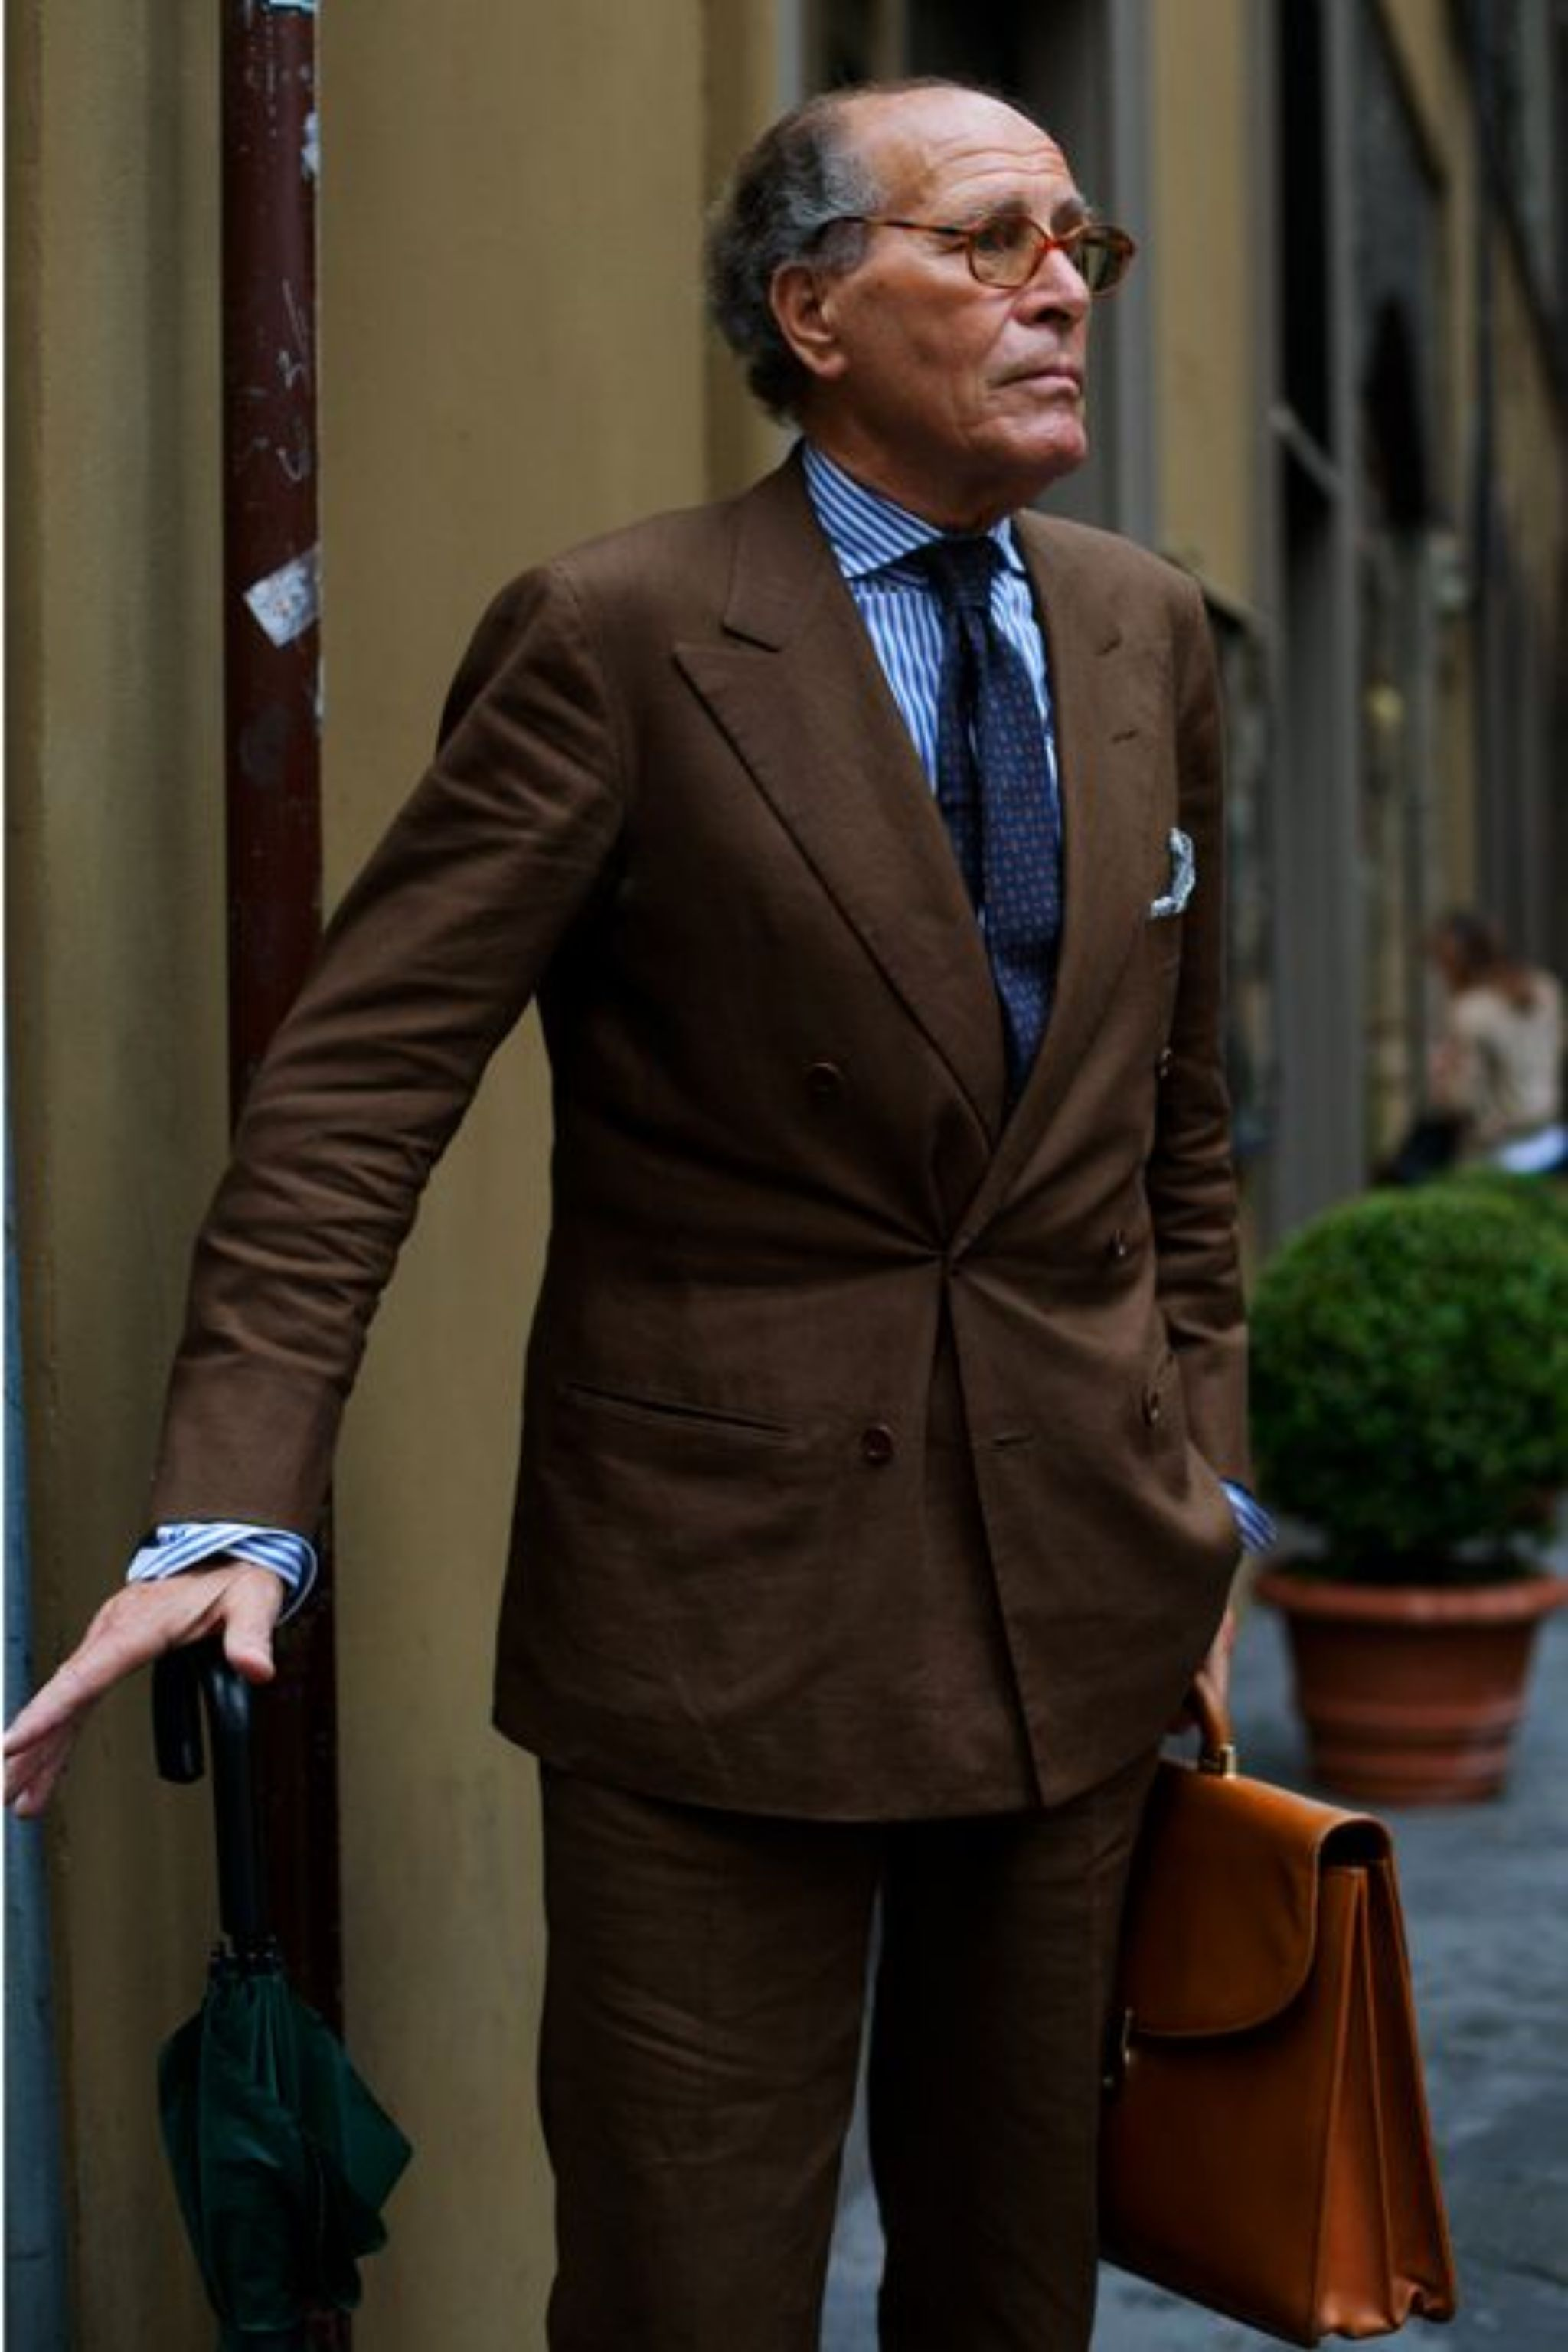 Brown linen suit inspiration